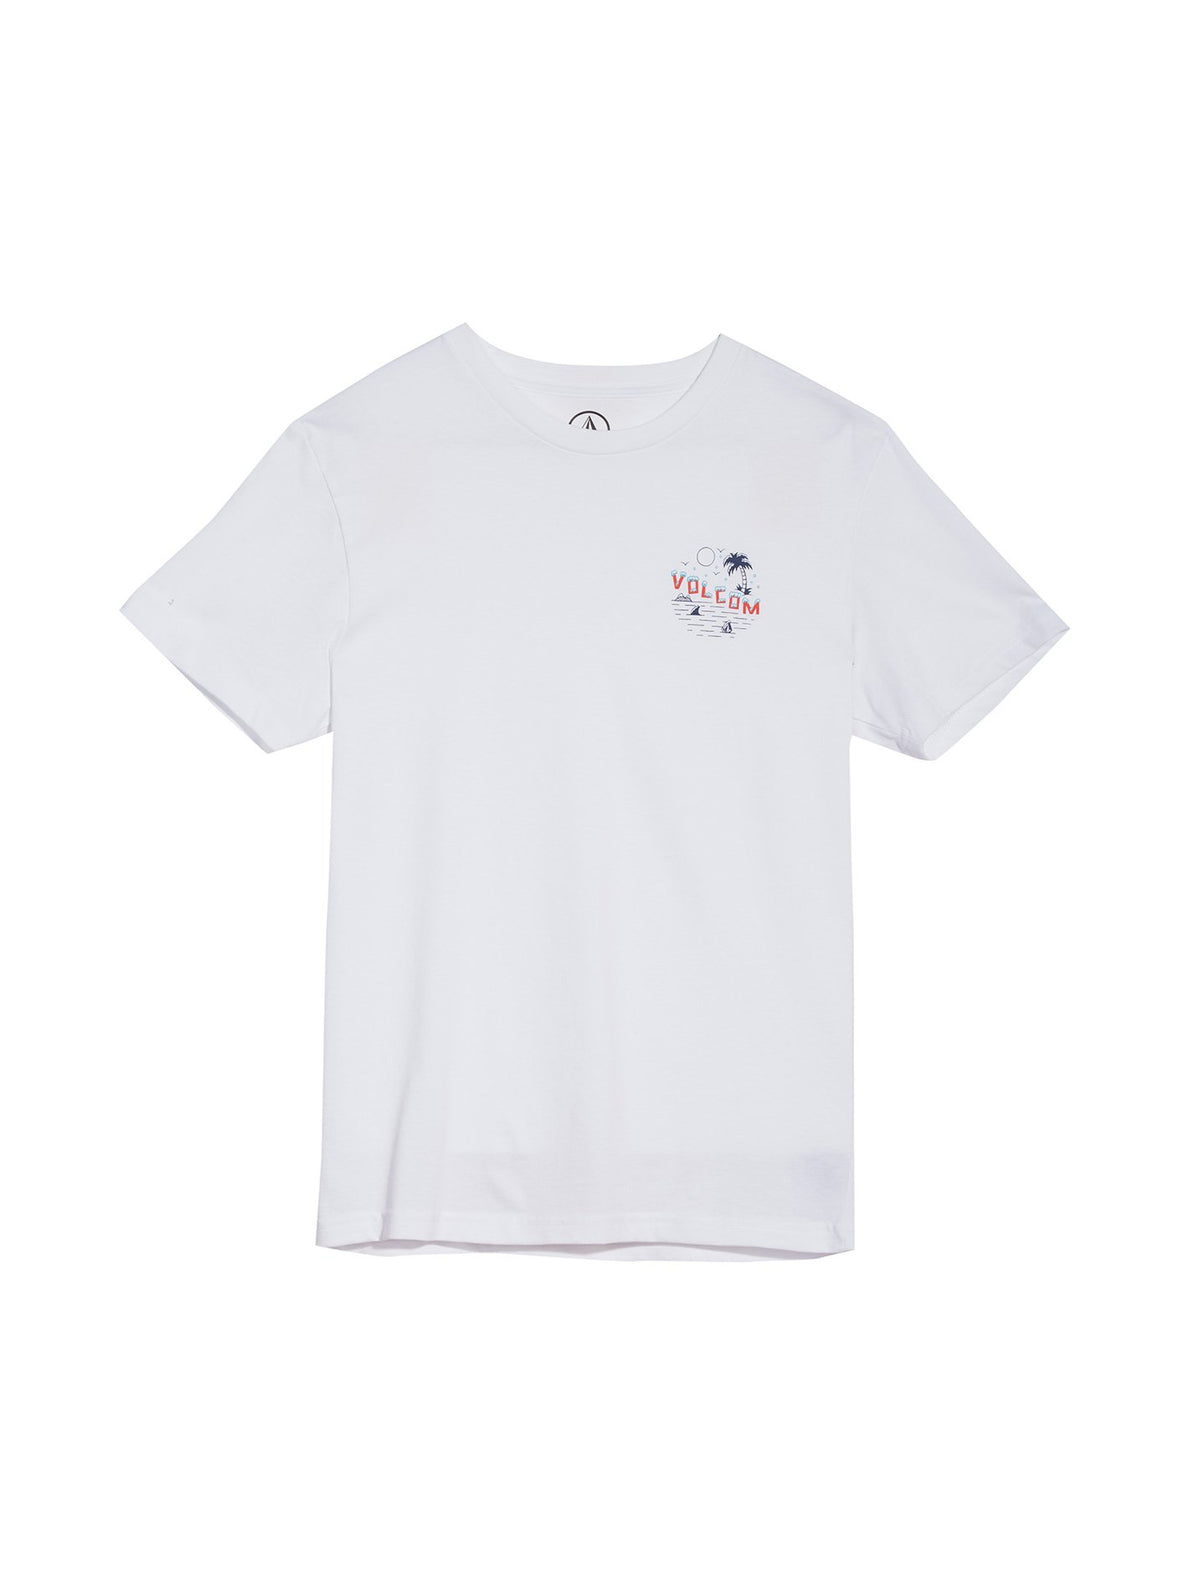 Fridazed Short Sleeve Tee - White (Niňo)